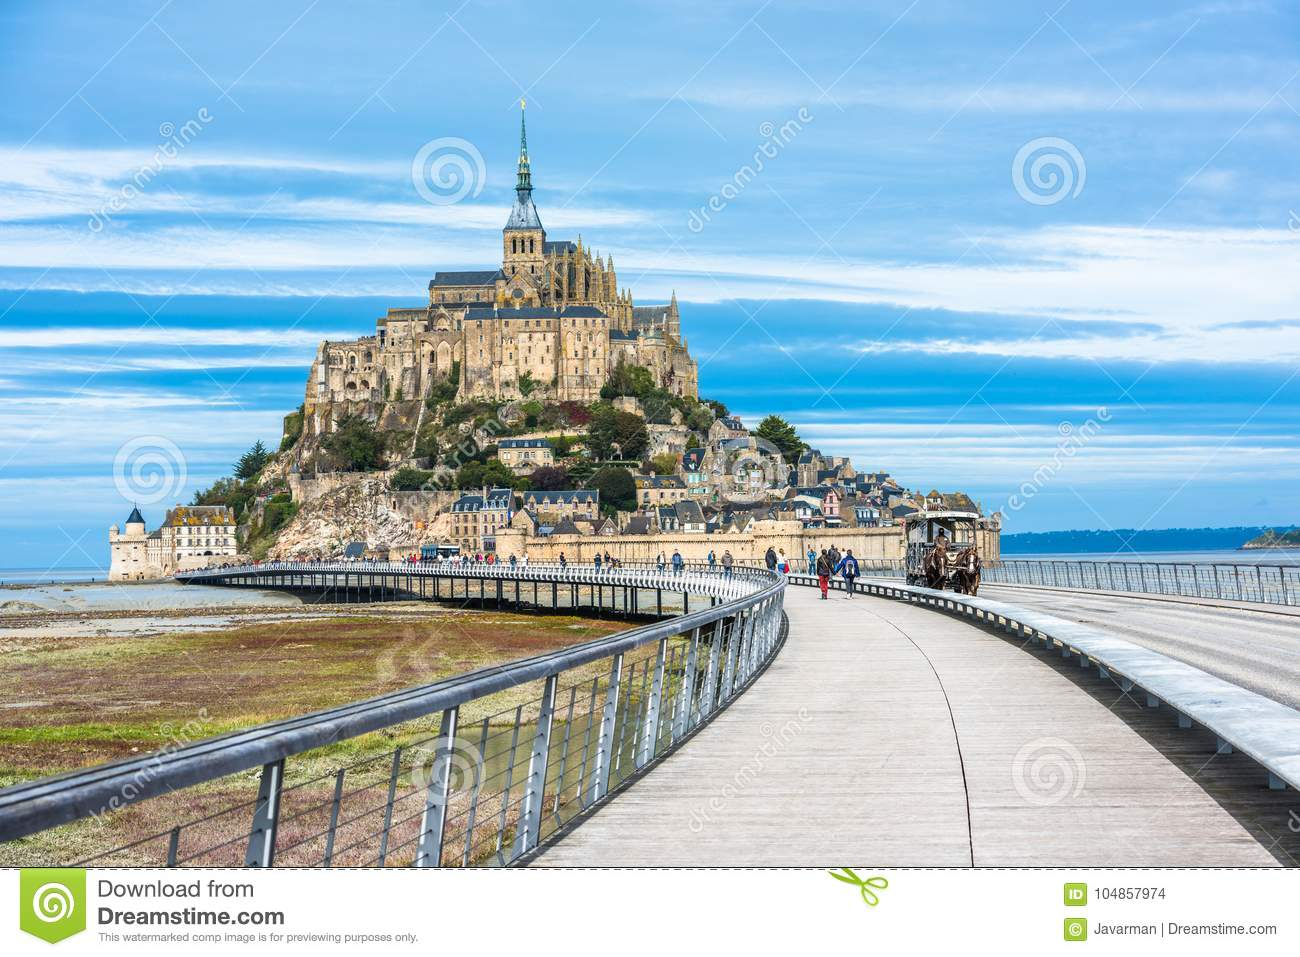 Mont-Saint-Michel, an island with the famous abbey, Normandy, Fr